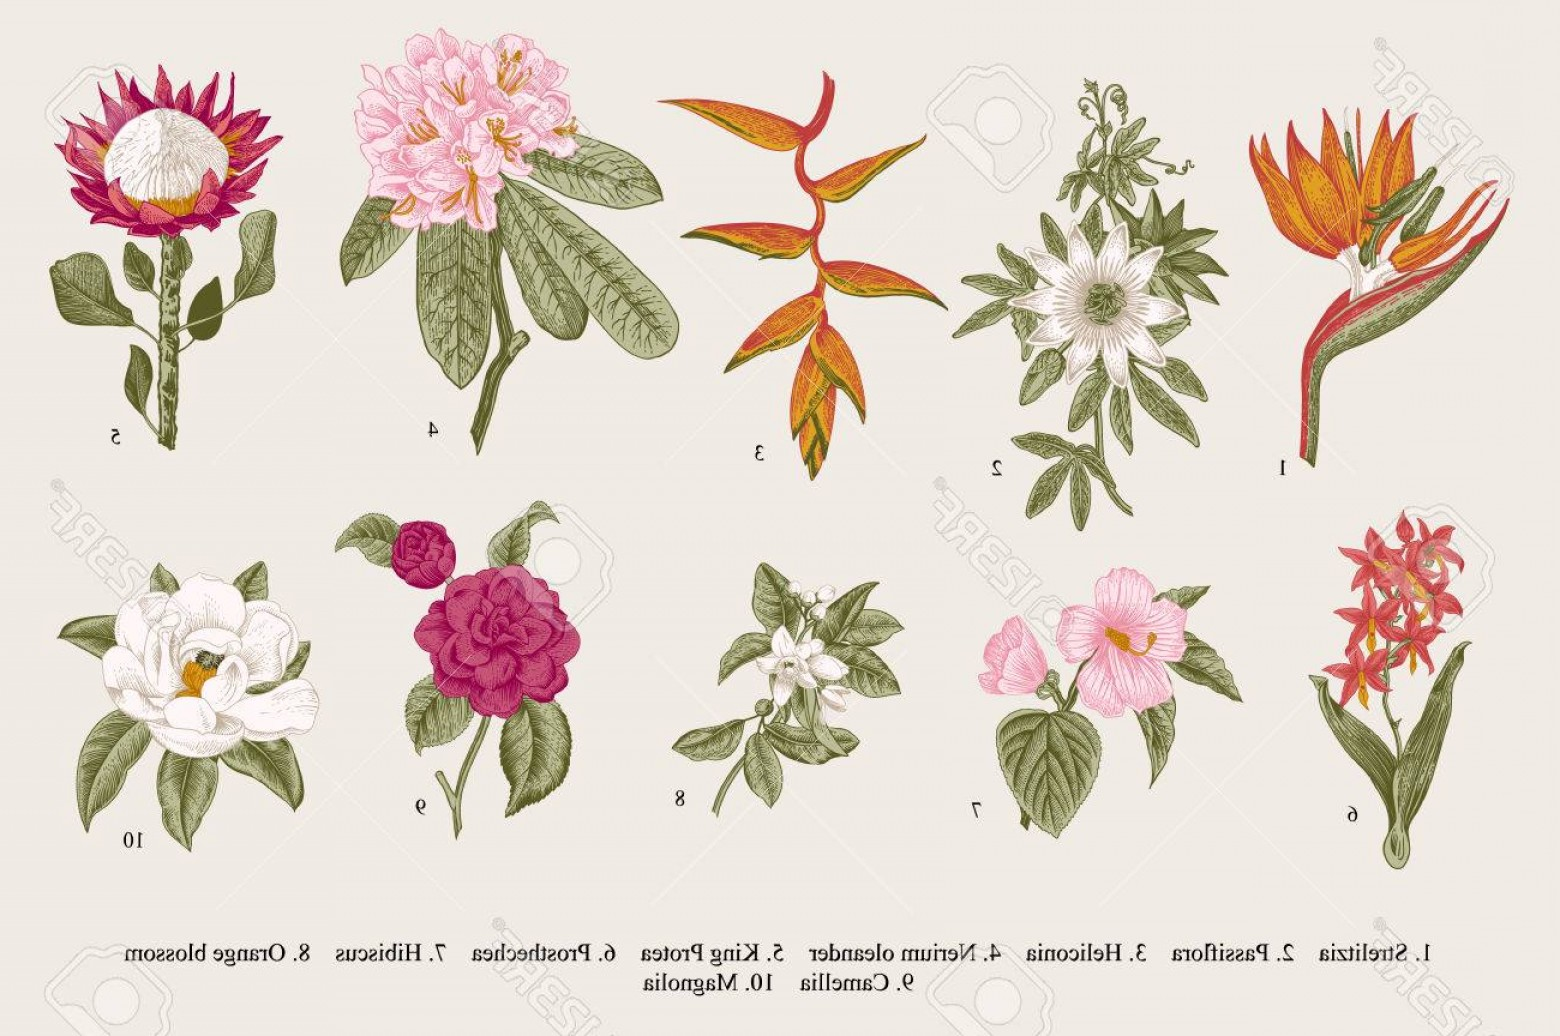 Botanical Flower Vectors: Photostock Vector Exotic Flowers Set Botanical Vintage Illustration